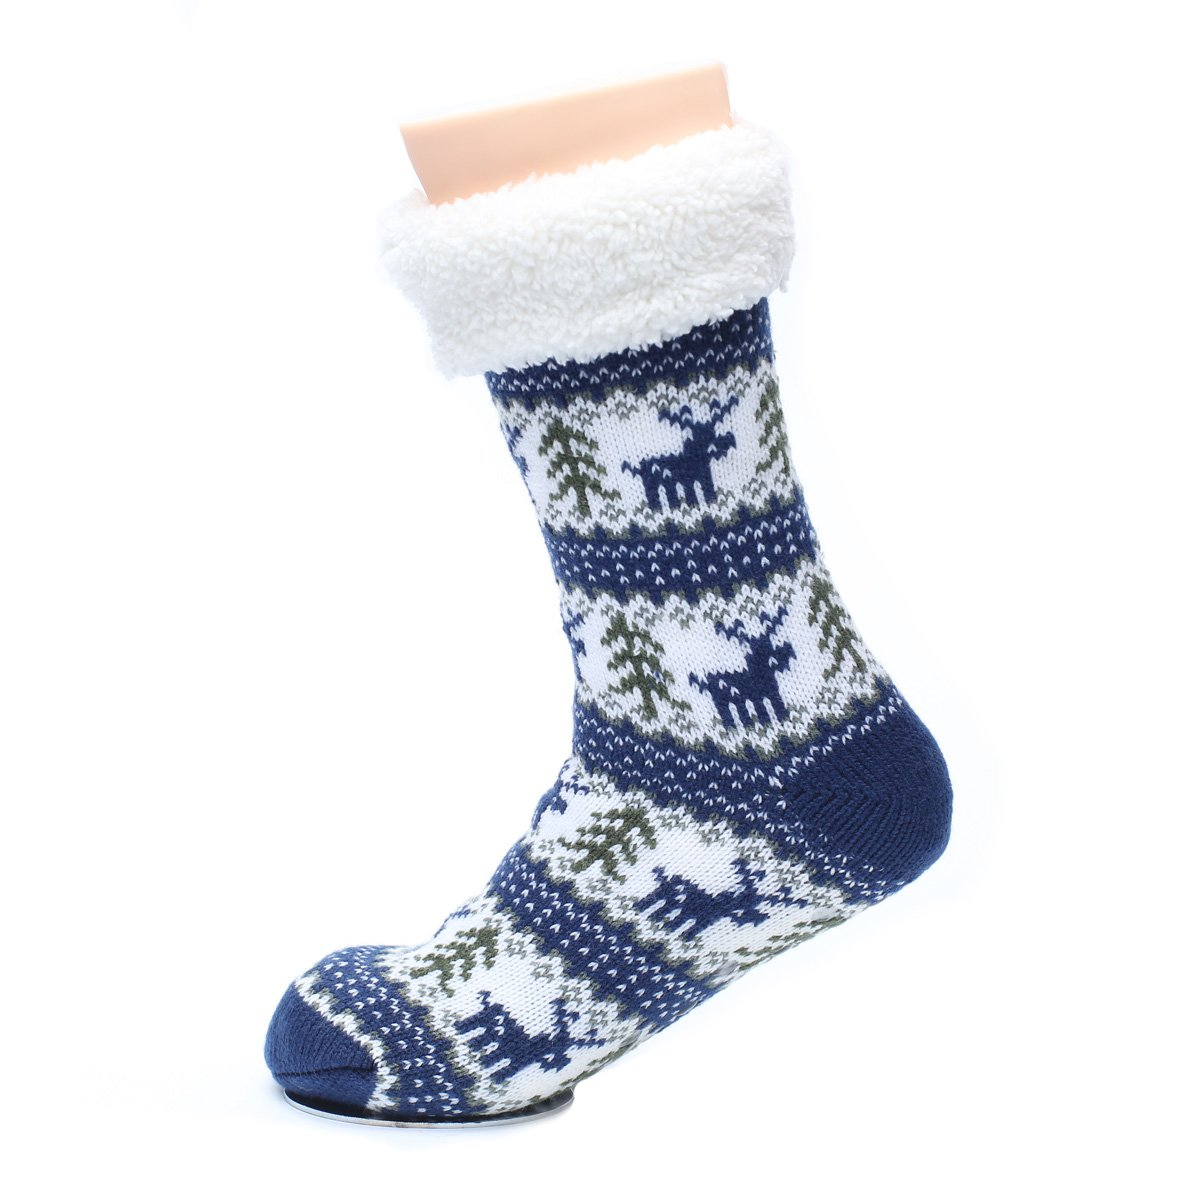 Ofoot Winter Polyester Knitted Deer Pattern Stockings, Style Home Slipper Socks (M/L 6.5-7.5 B(M) US, Blue)